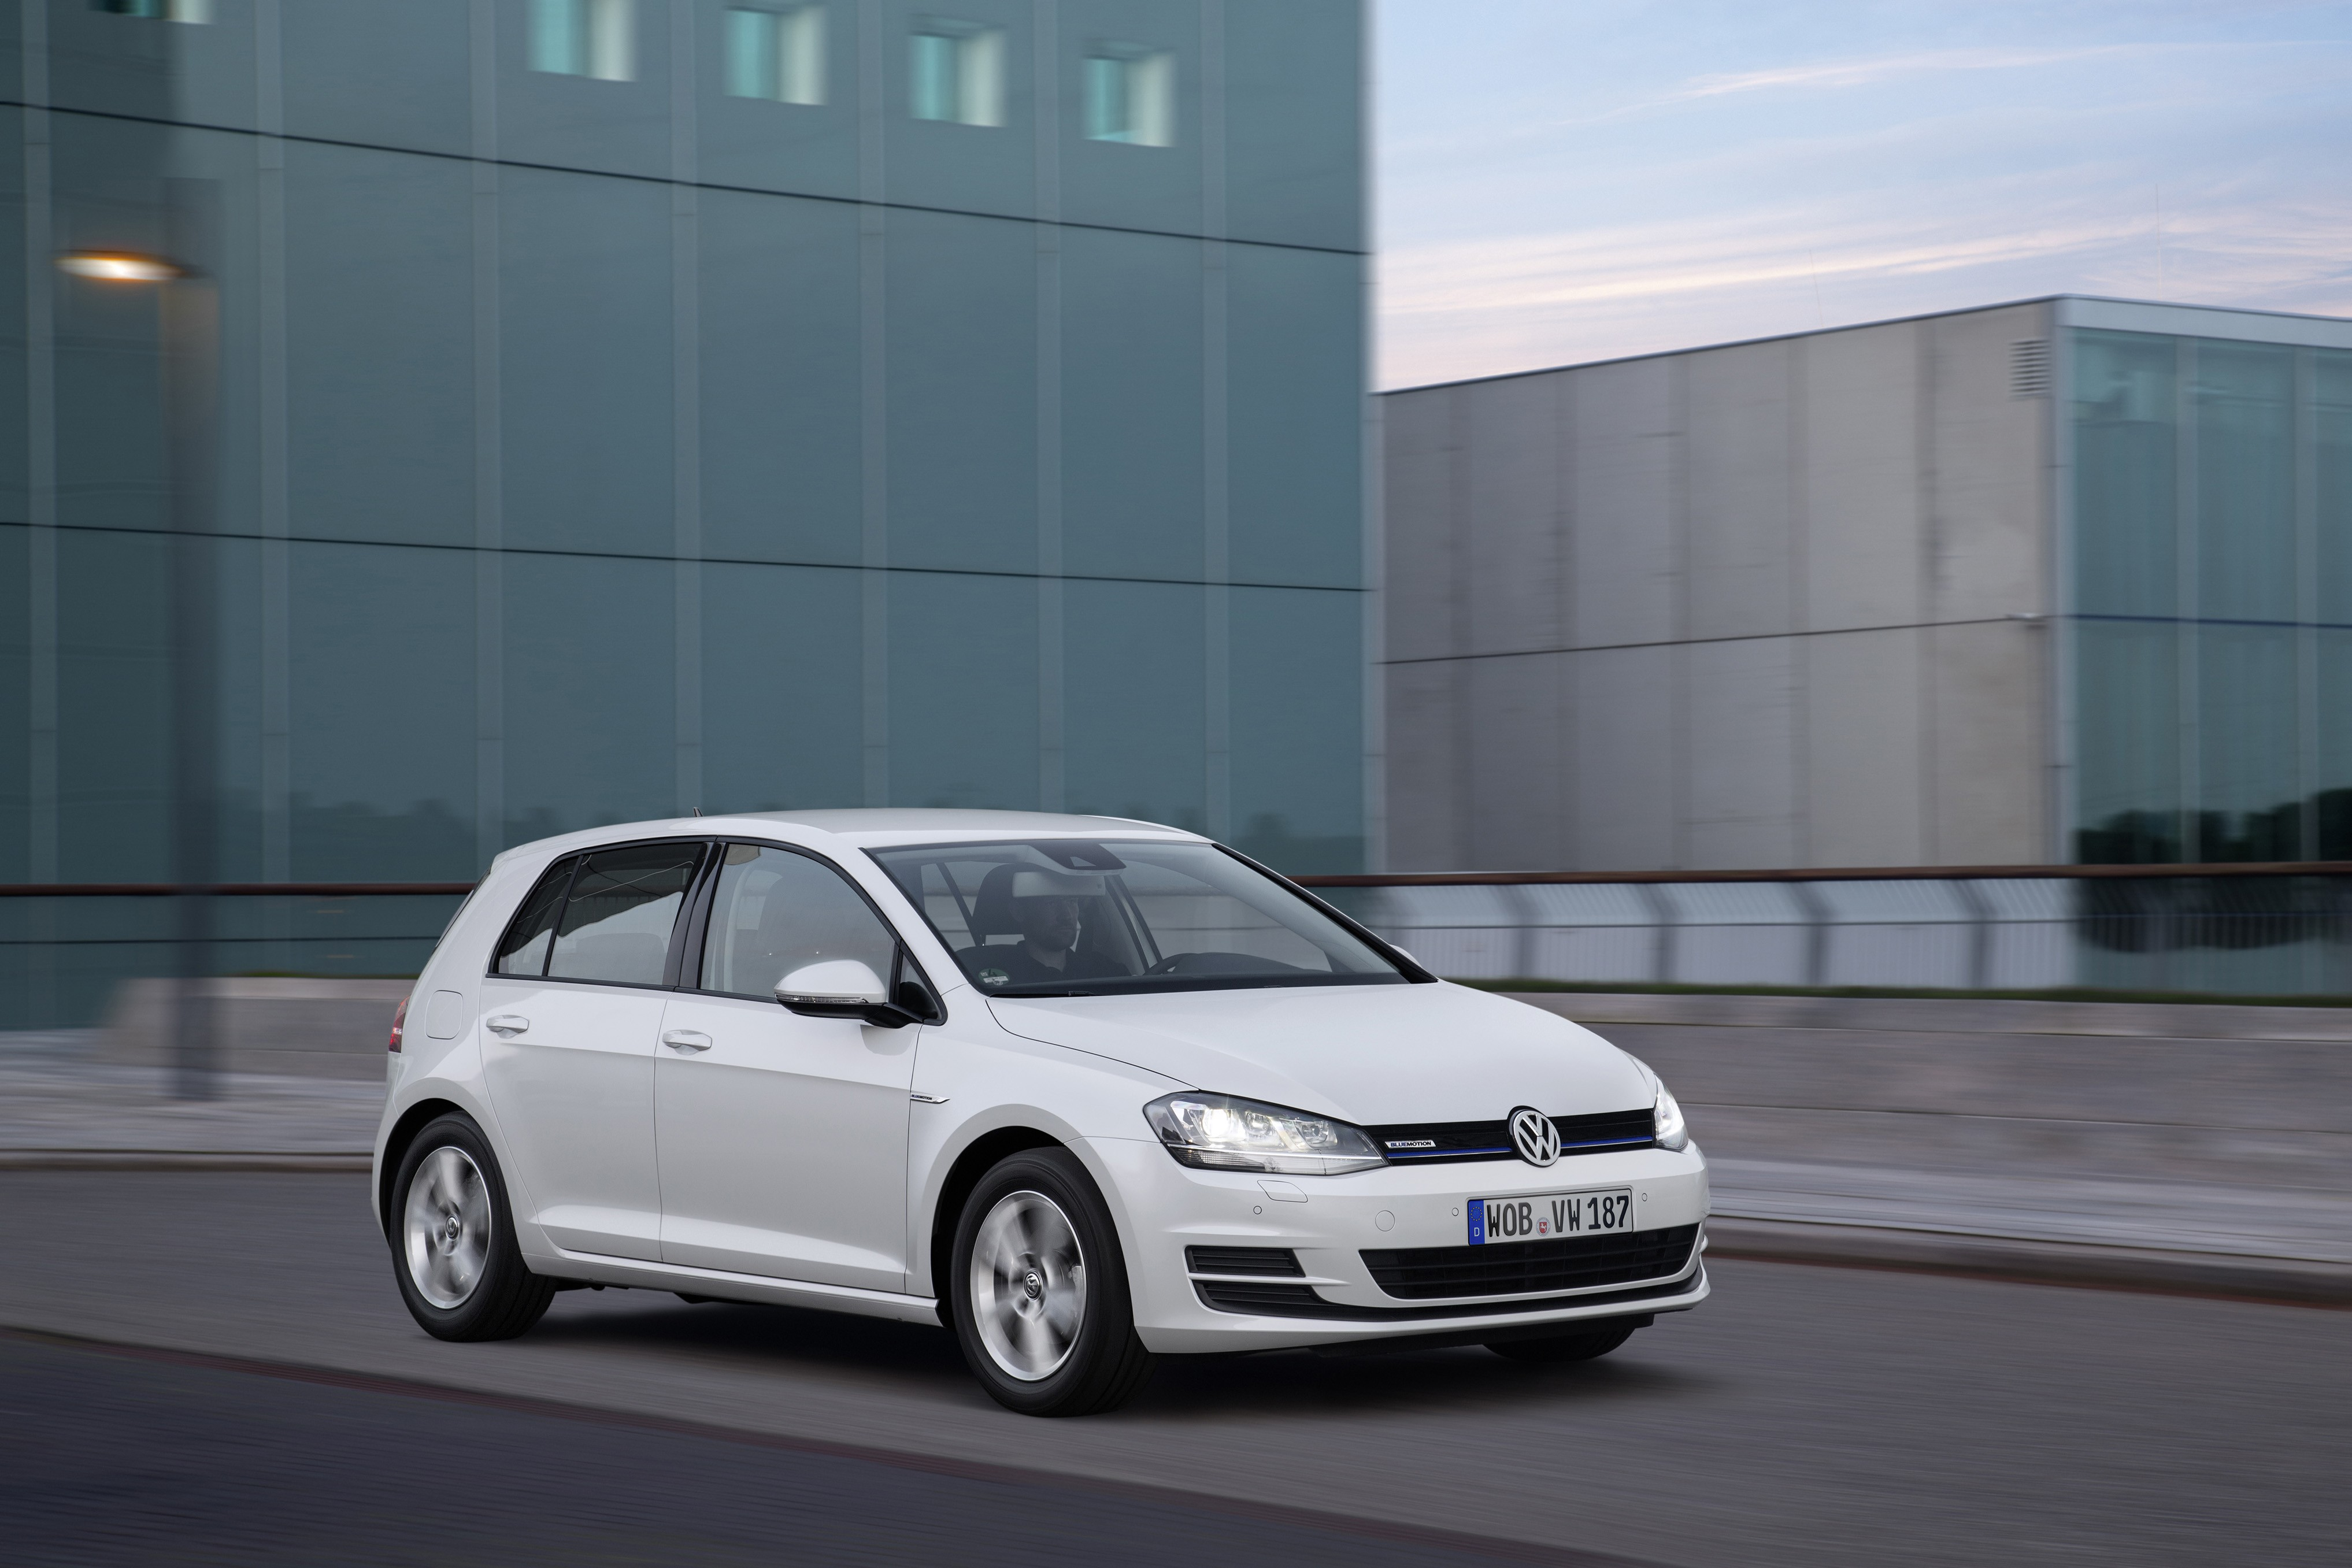 Volkswagen Golf Tsi Bluemotion Debuts With Efficient Cylinder Turbo Engine Photo Gallery